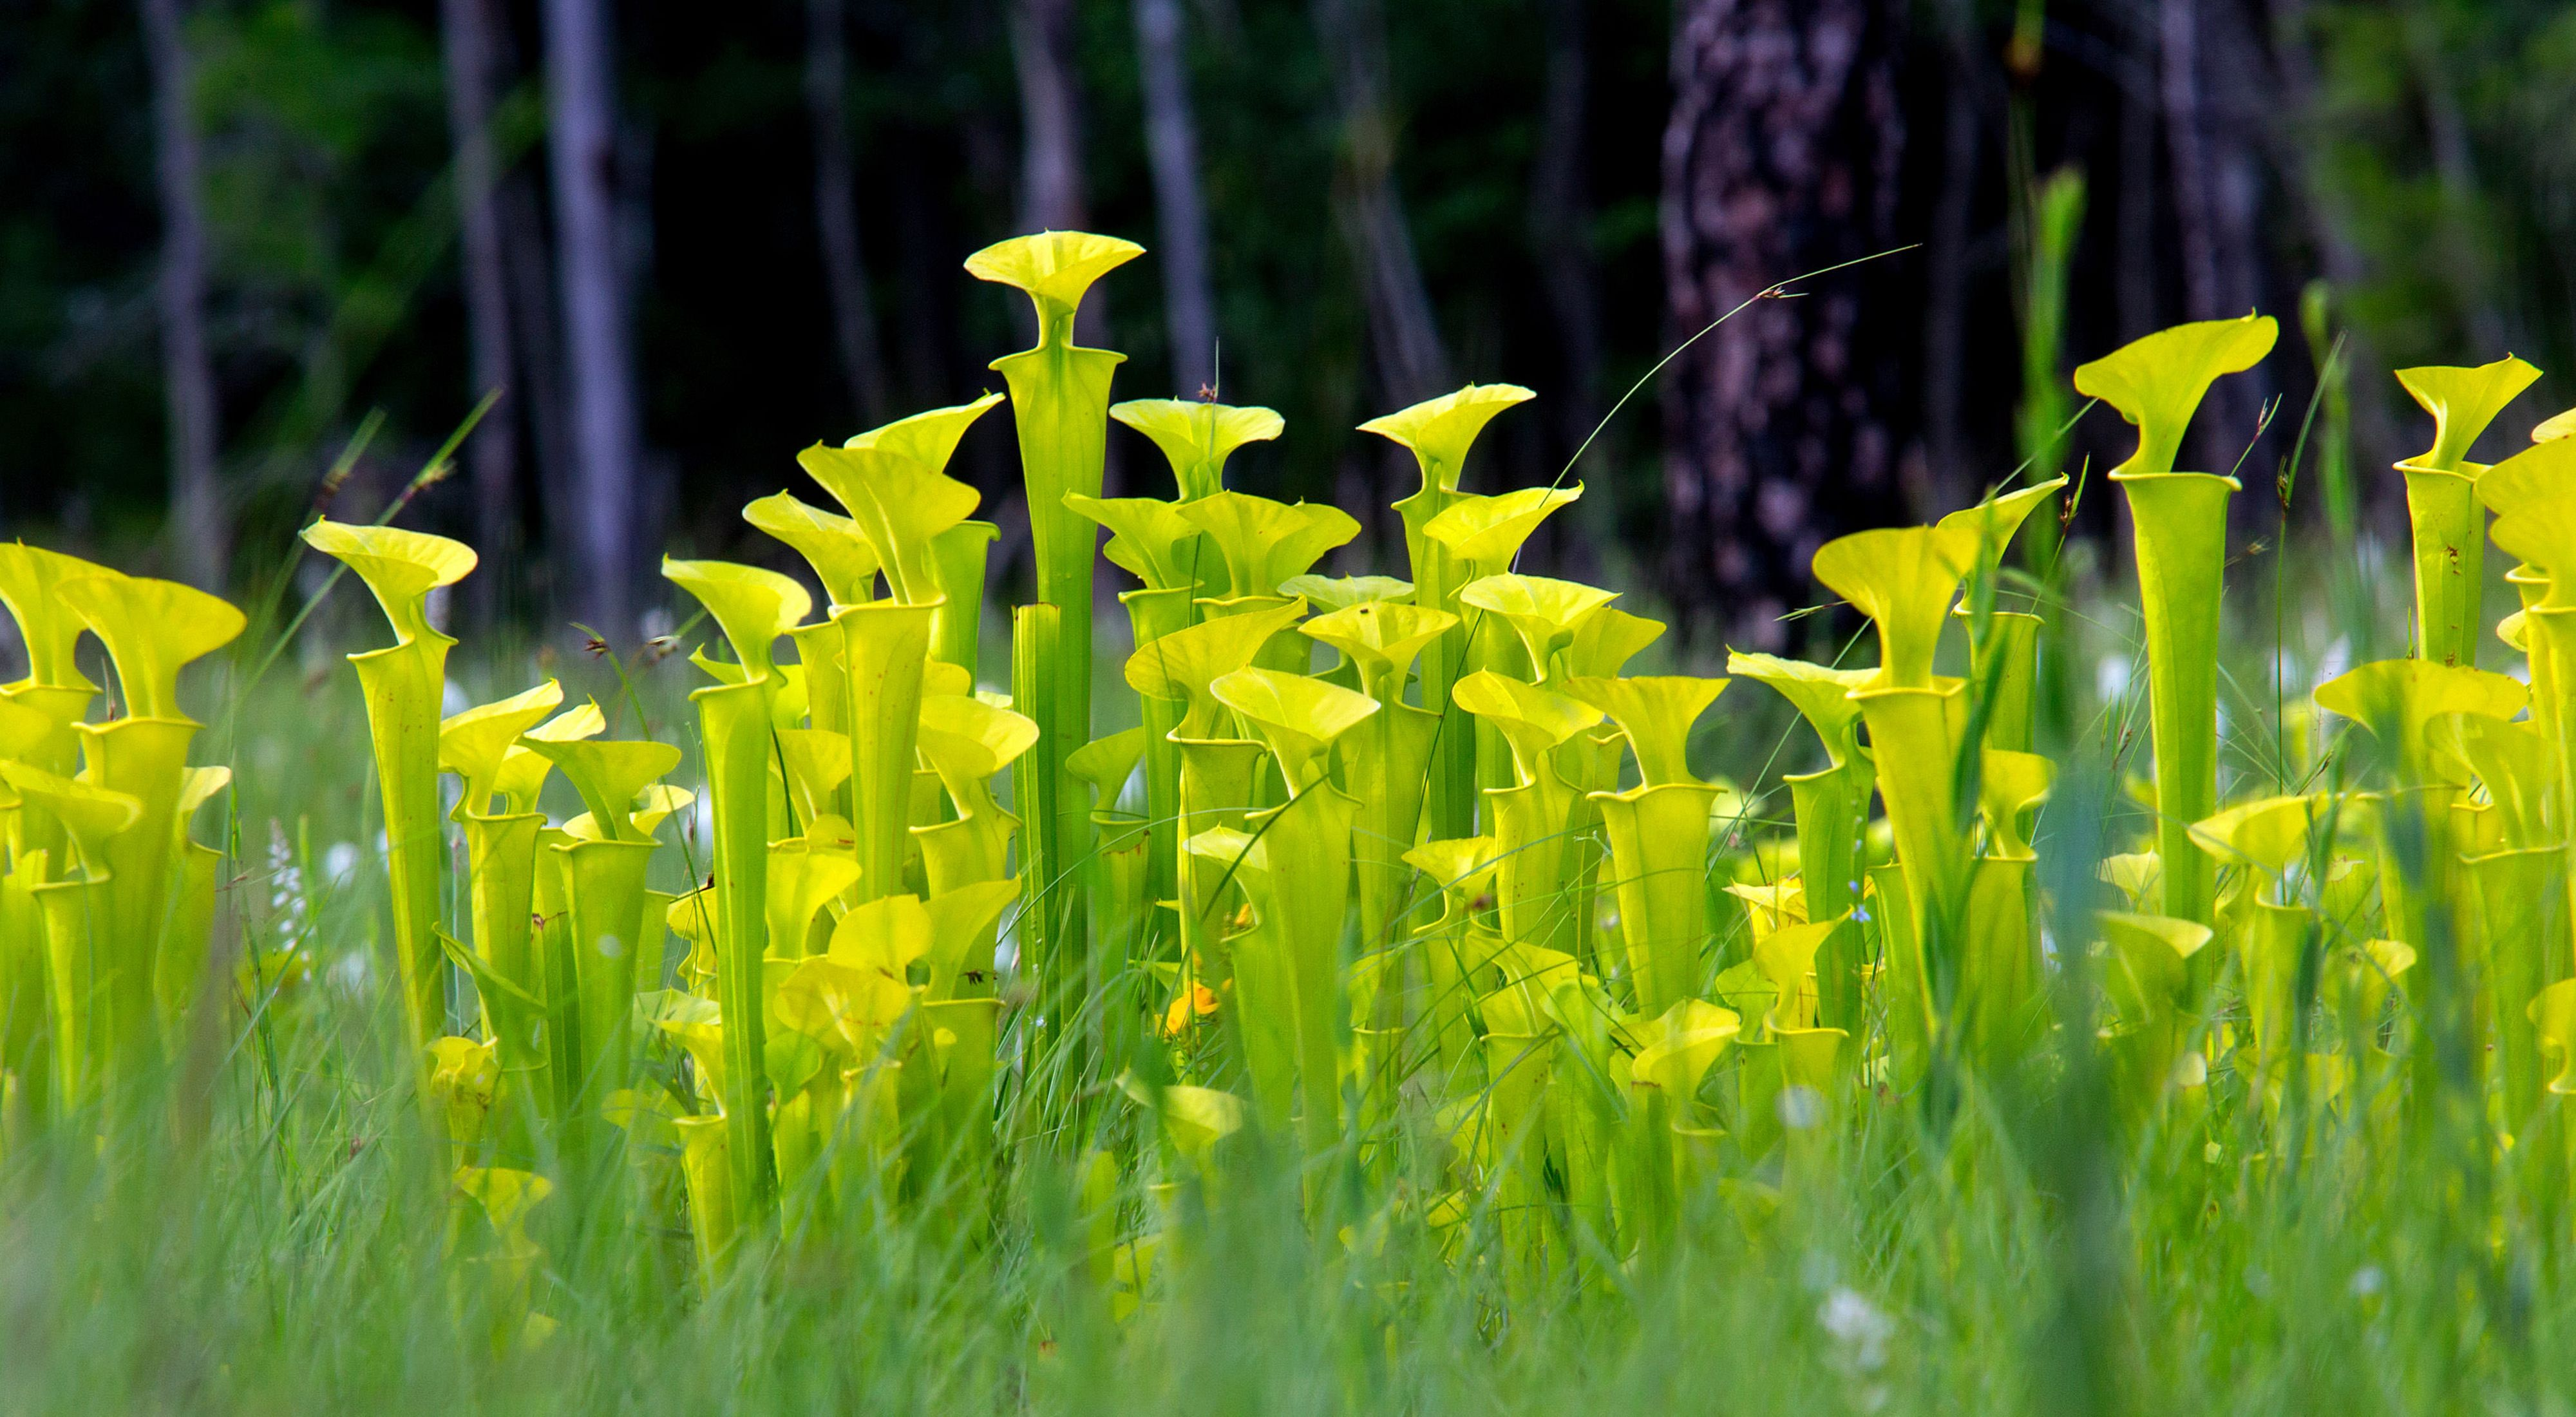 Densely packed tall green and yellow pitchers of the yellow pitcher plant.